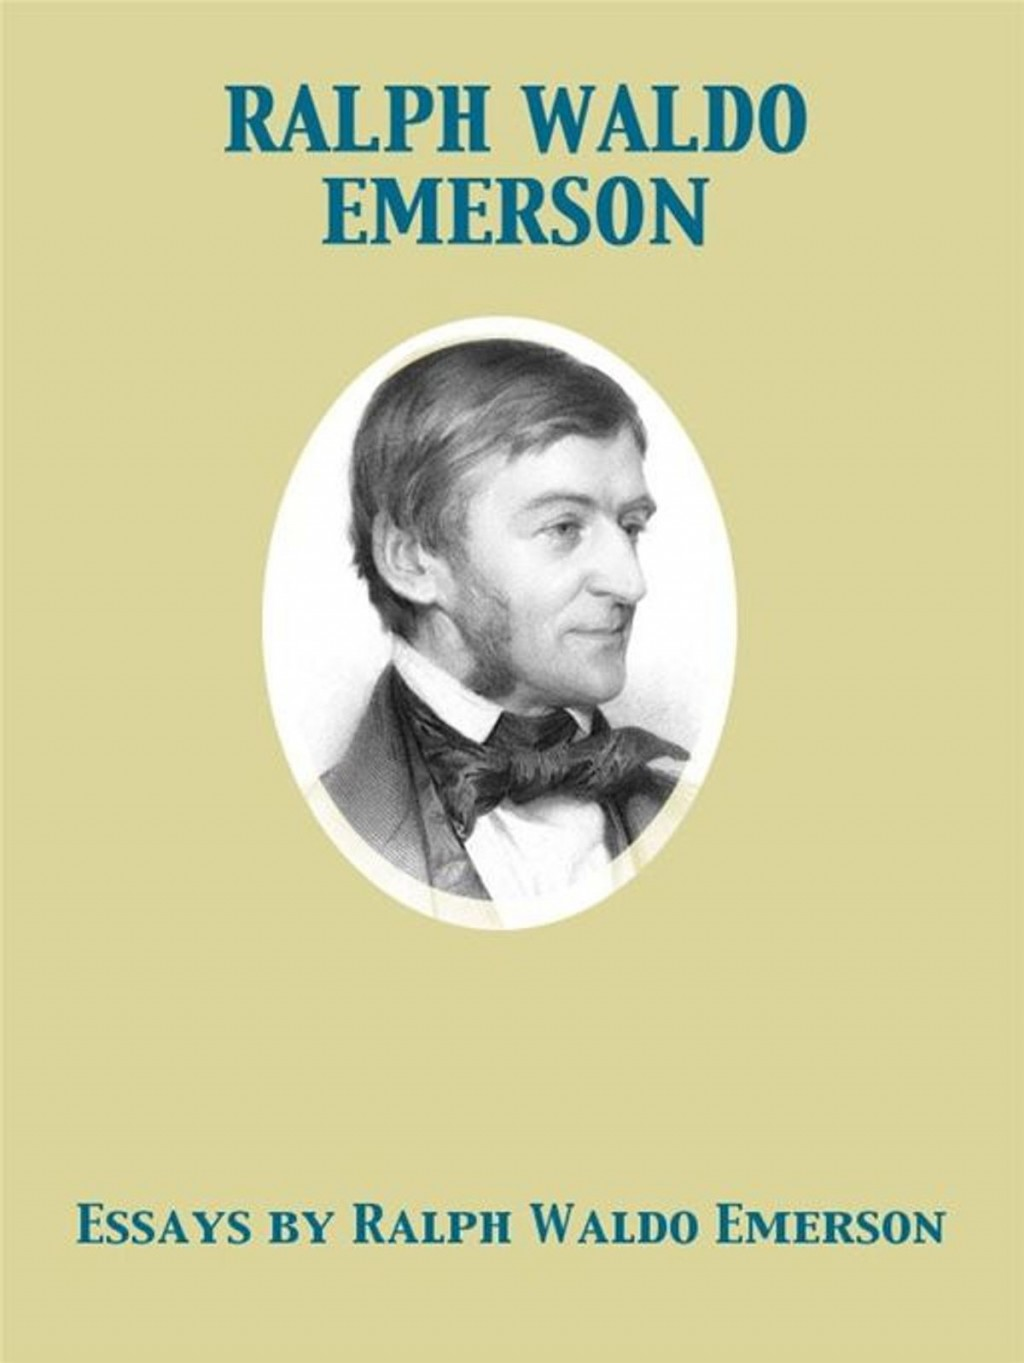 012 Essay Example Ralph Waldo Emerson Essays By Unusual Nature And Selected Pdf Download First Second Series Large